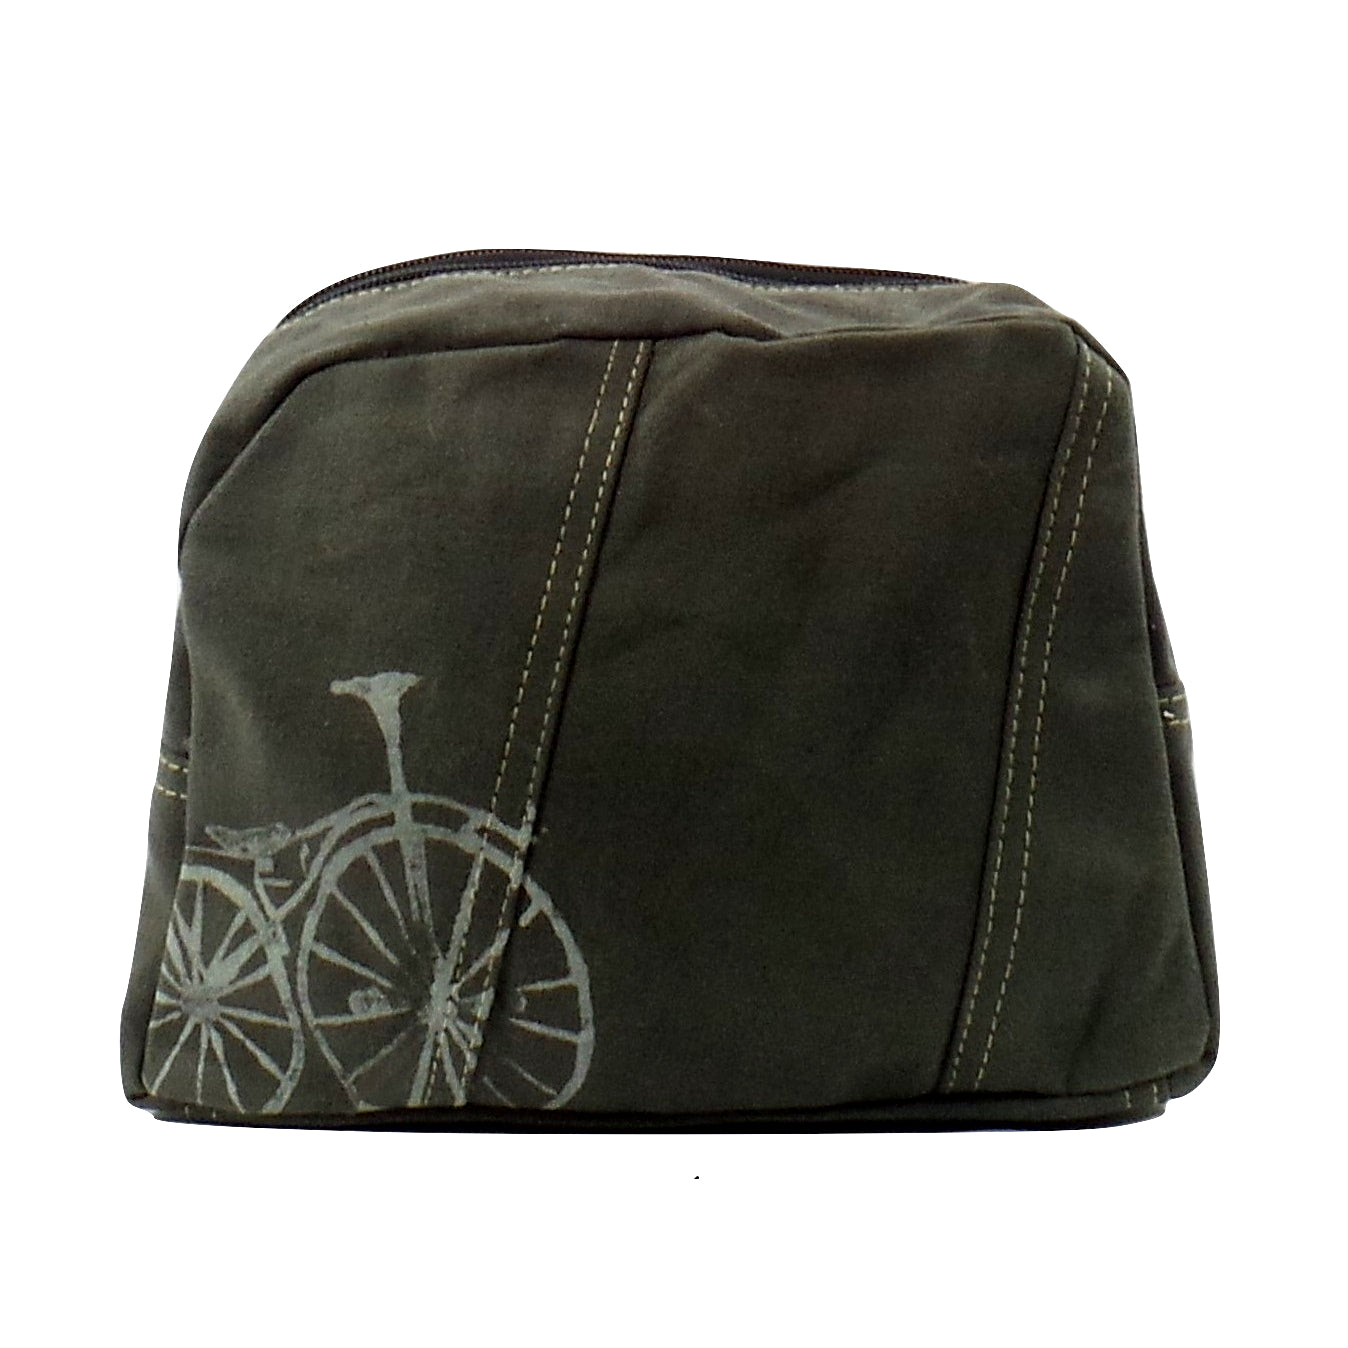 Bicycle Shaving Kit Bag (55971)